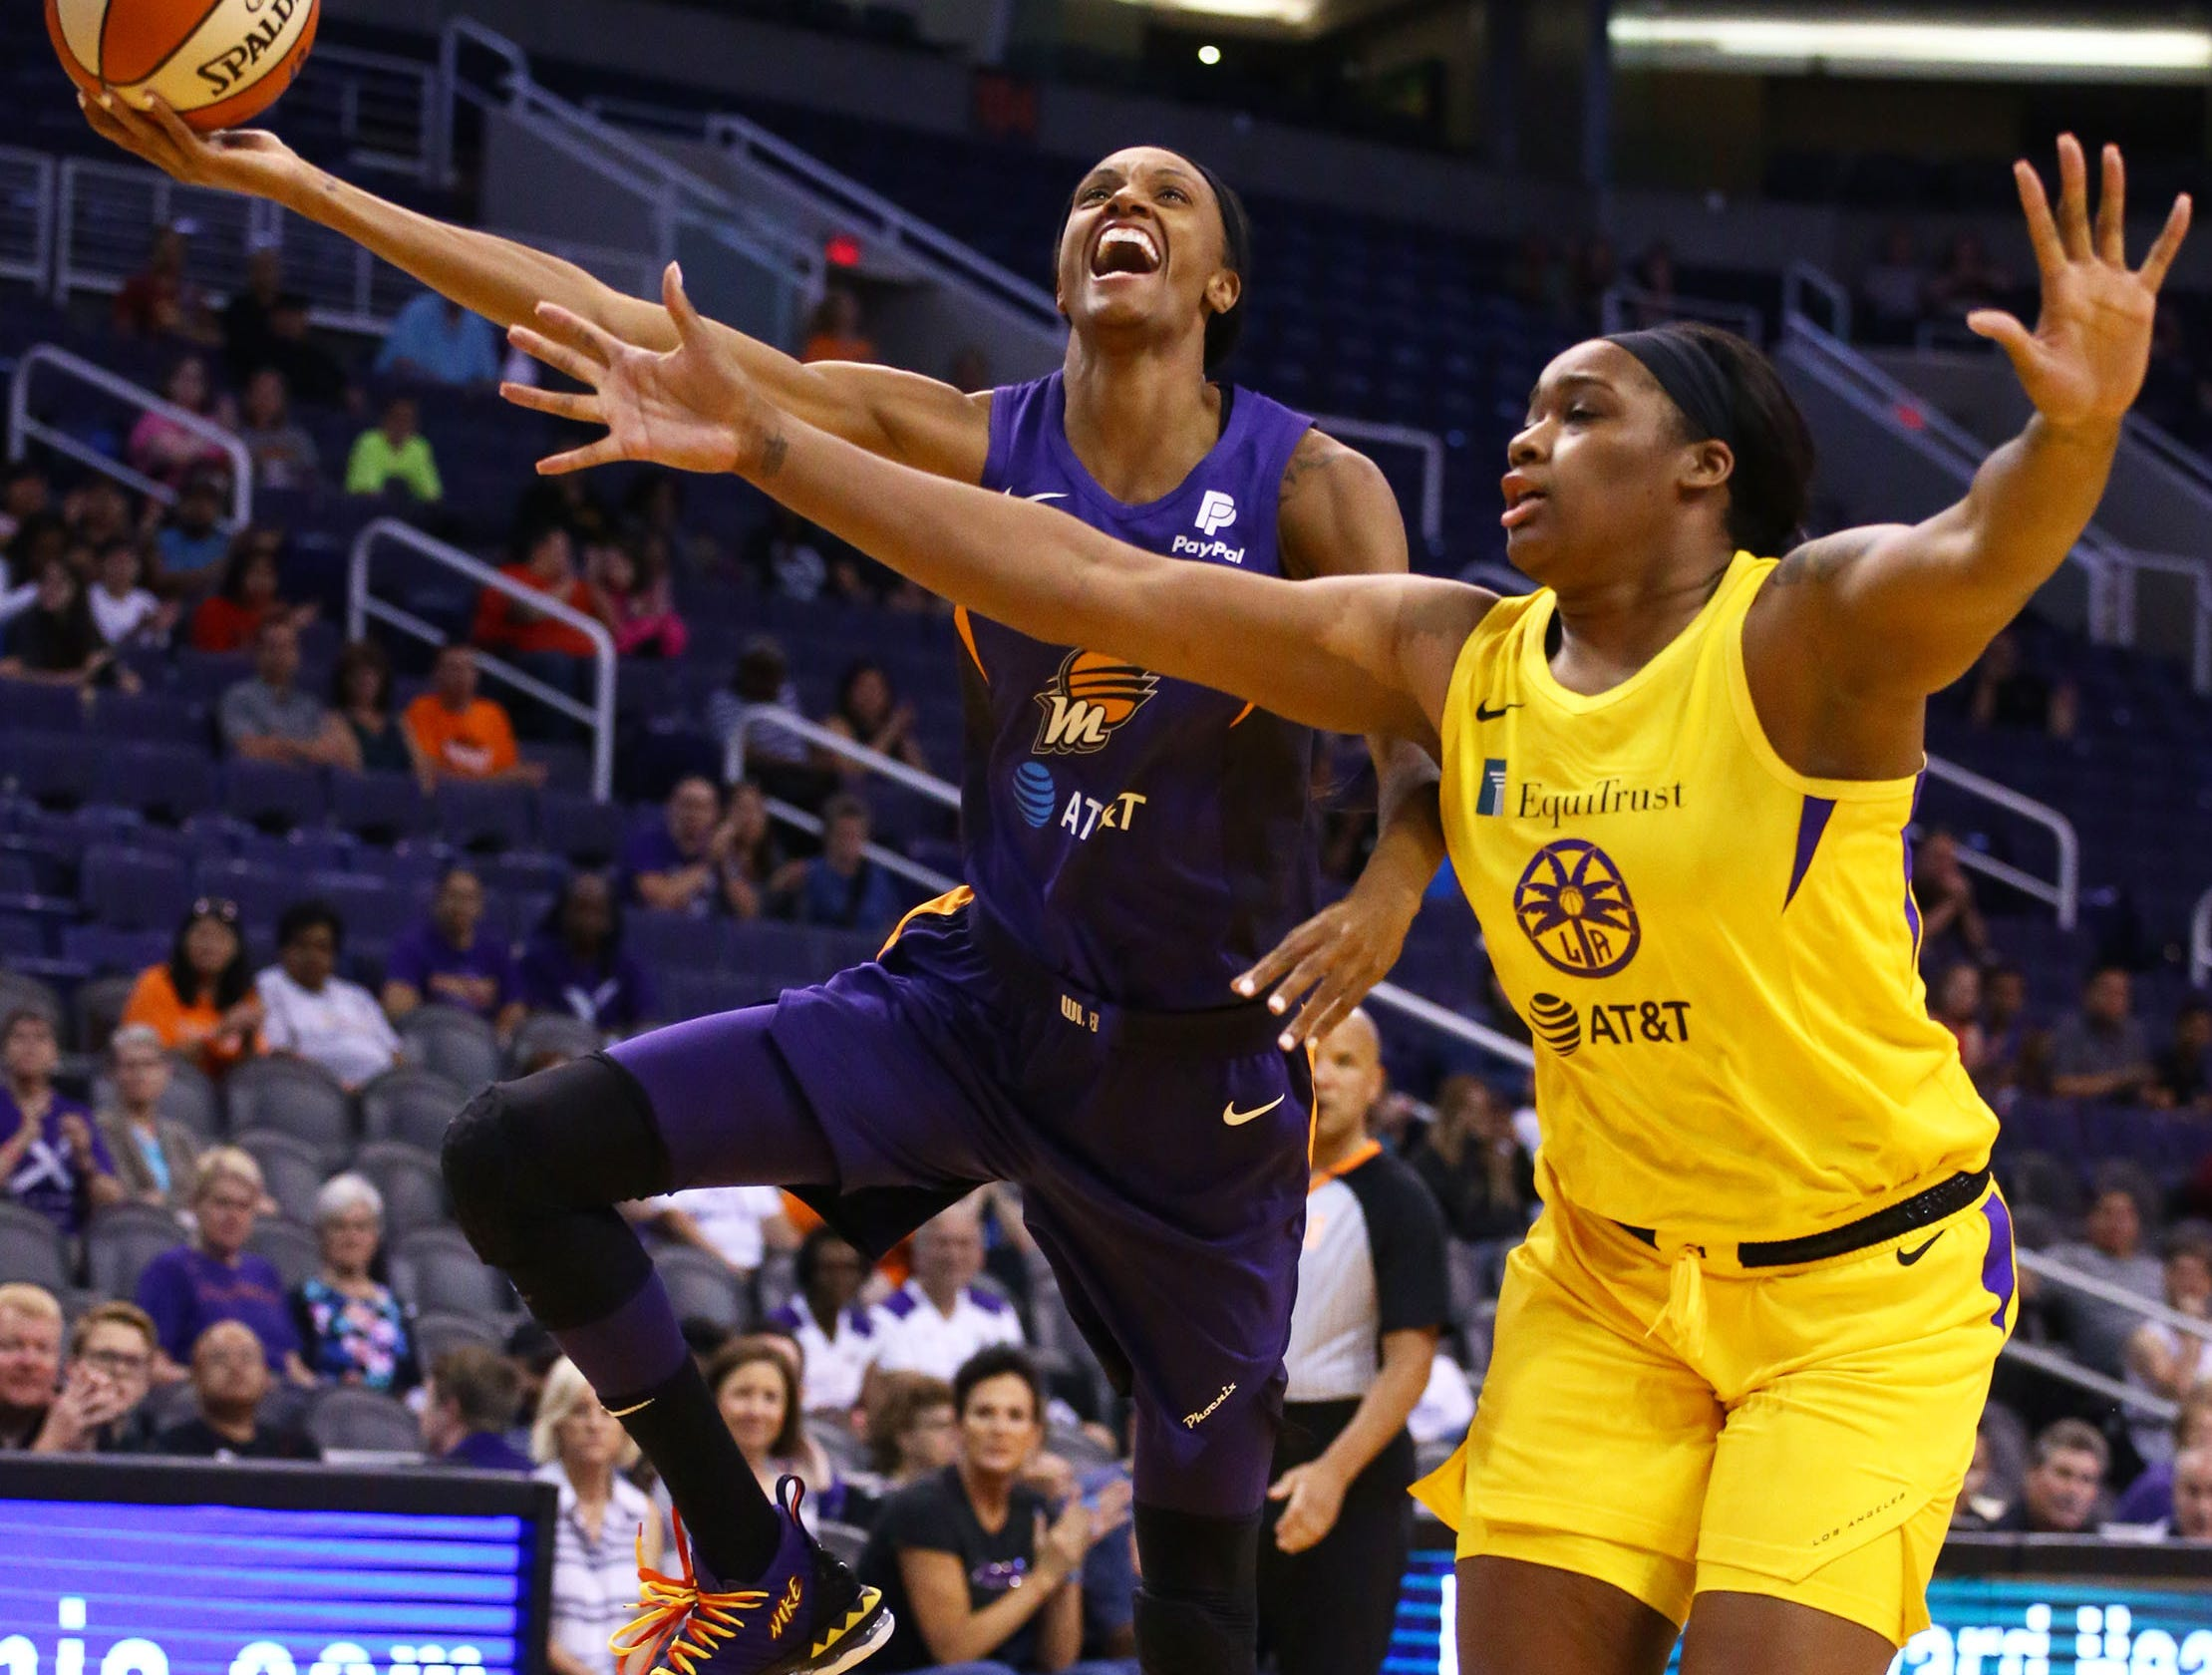 Phoenix Mercury forward DeWanna Bonner is guarded by Los Angeles Sparks center Rachel Hollivay in the first half during a preseason game on May 11, 2019 in Phoenix, Ariz.